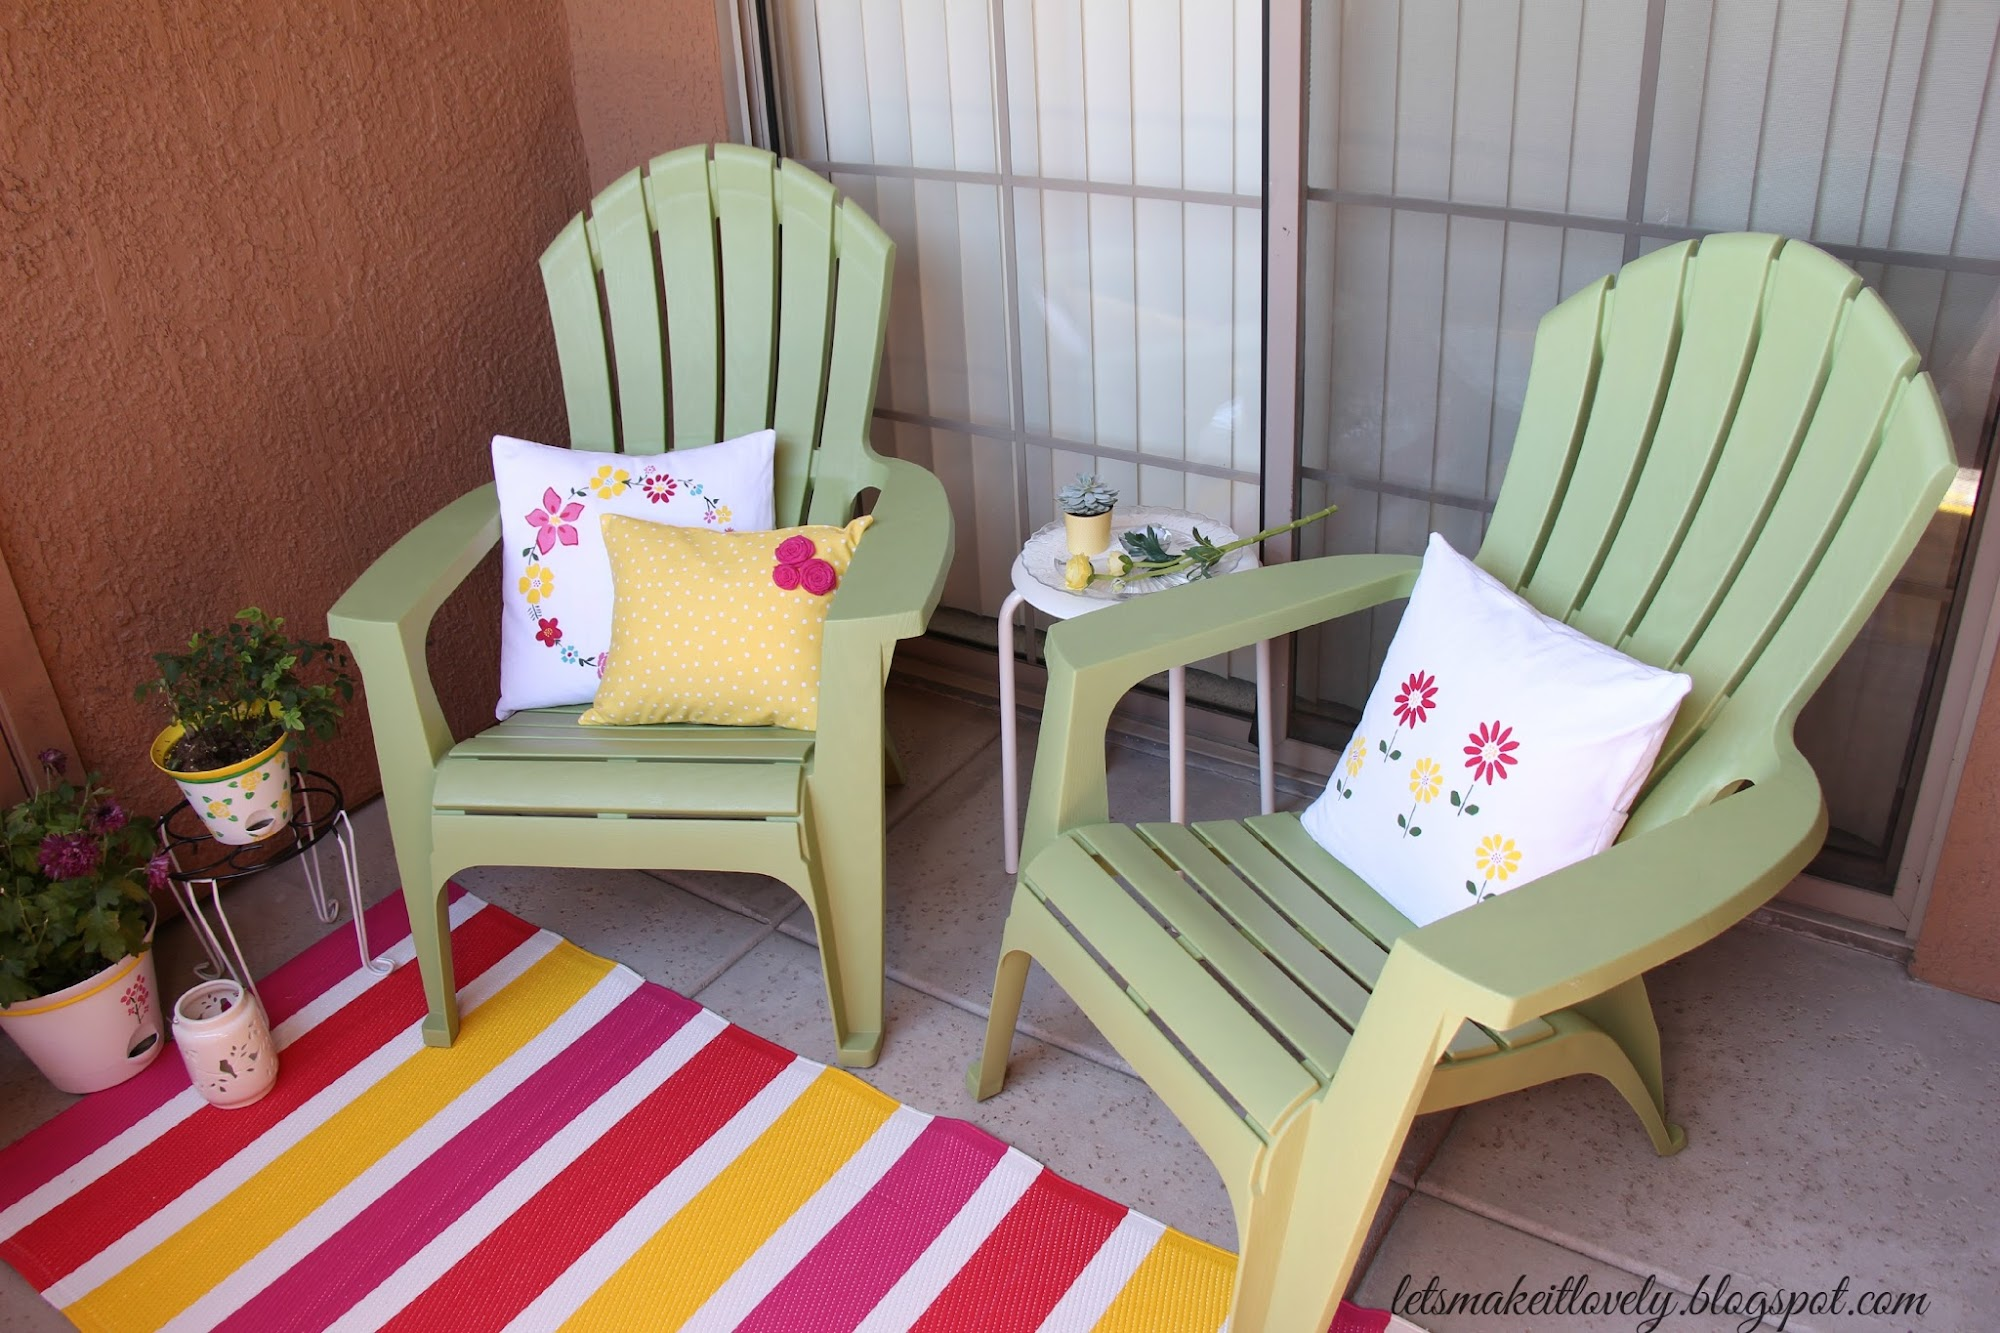 Patio makeover under 100$ budget. Make yourself a perfect summer patio that is cozy, comfy and colorful.